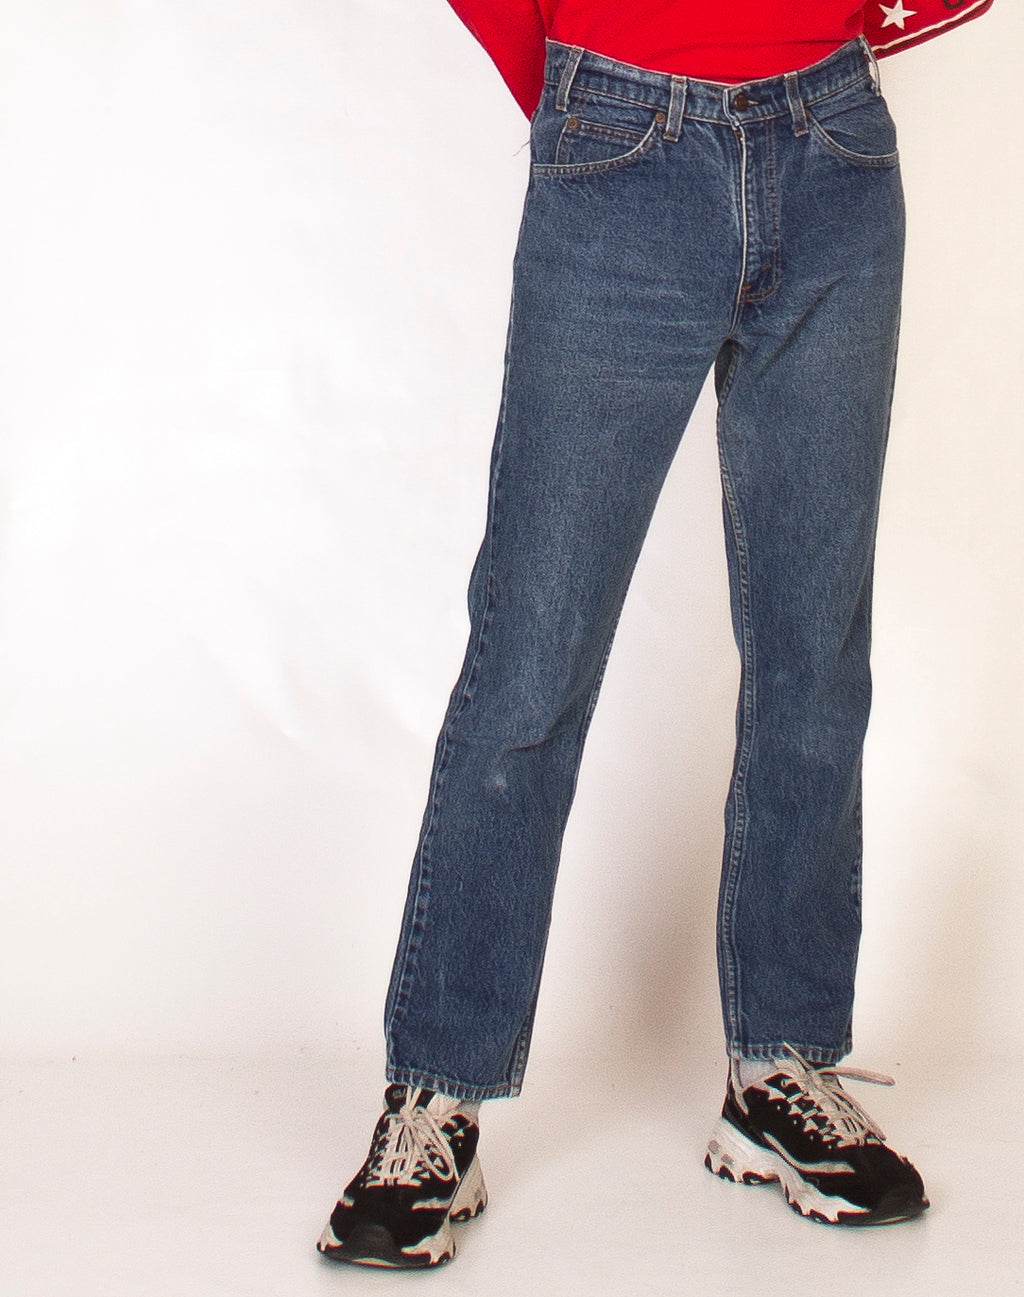 LEVI'S MID WASH STRAIGHT LEG JEANS